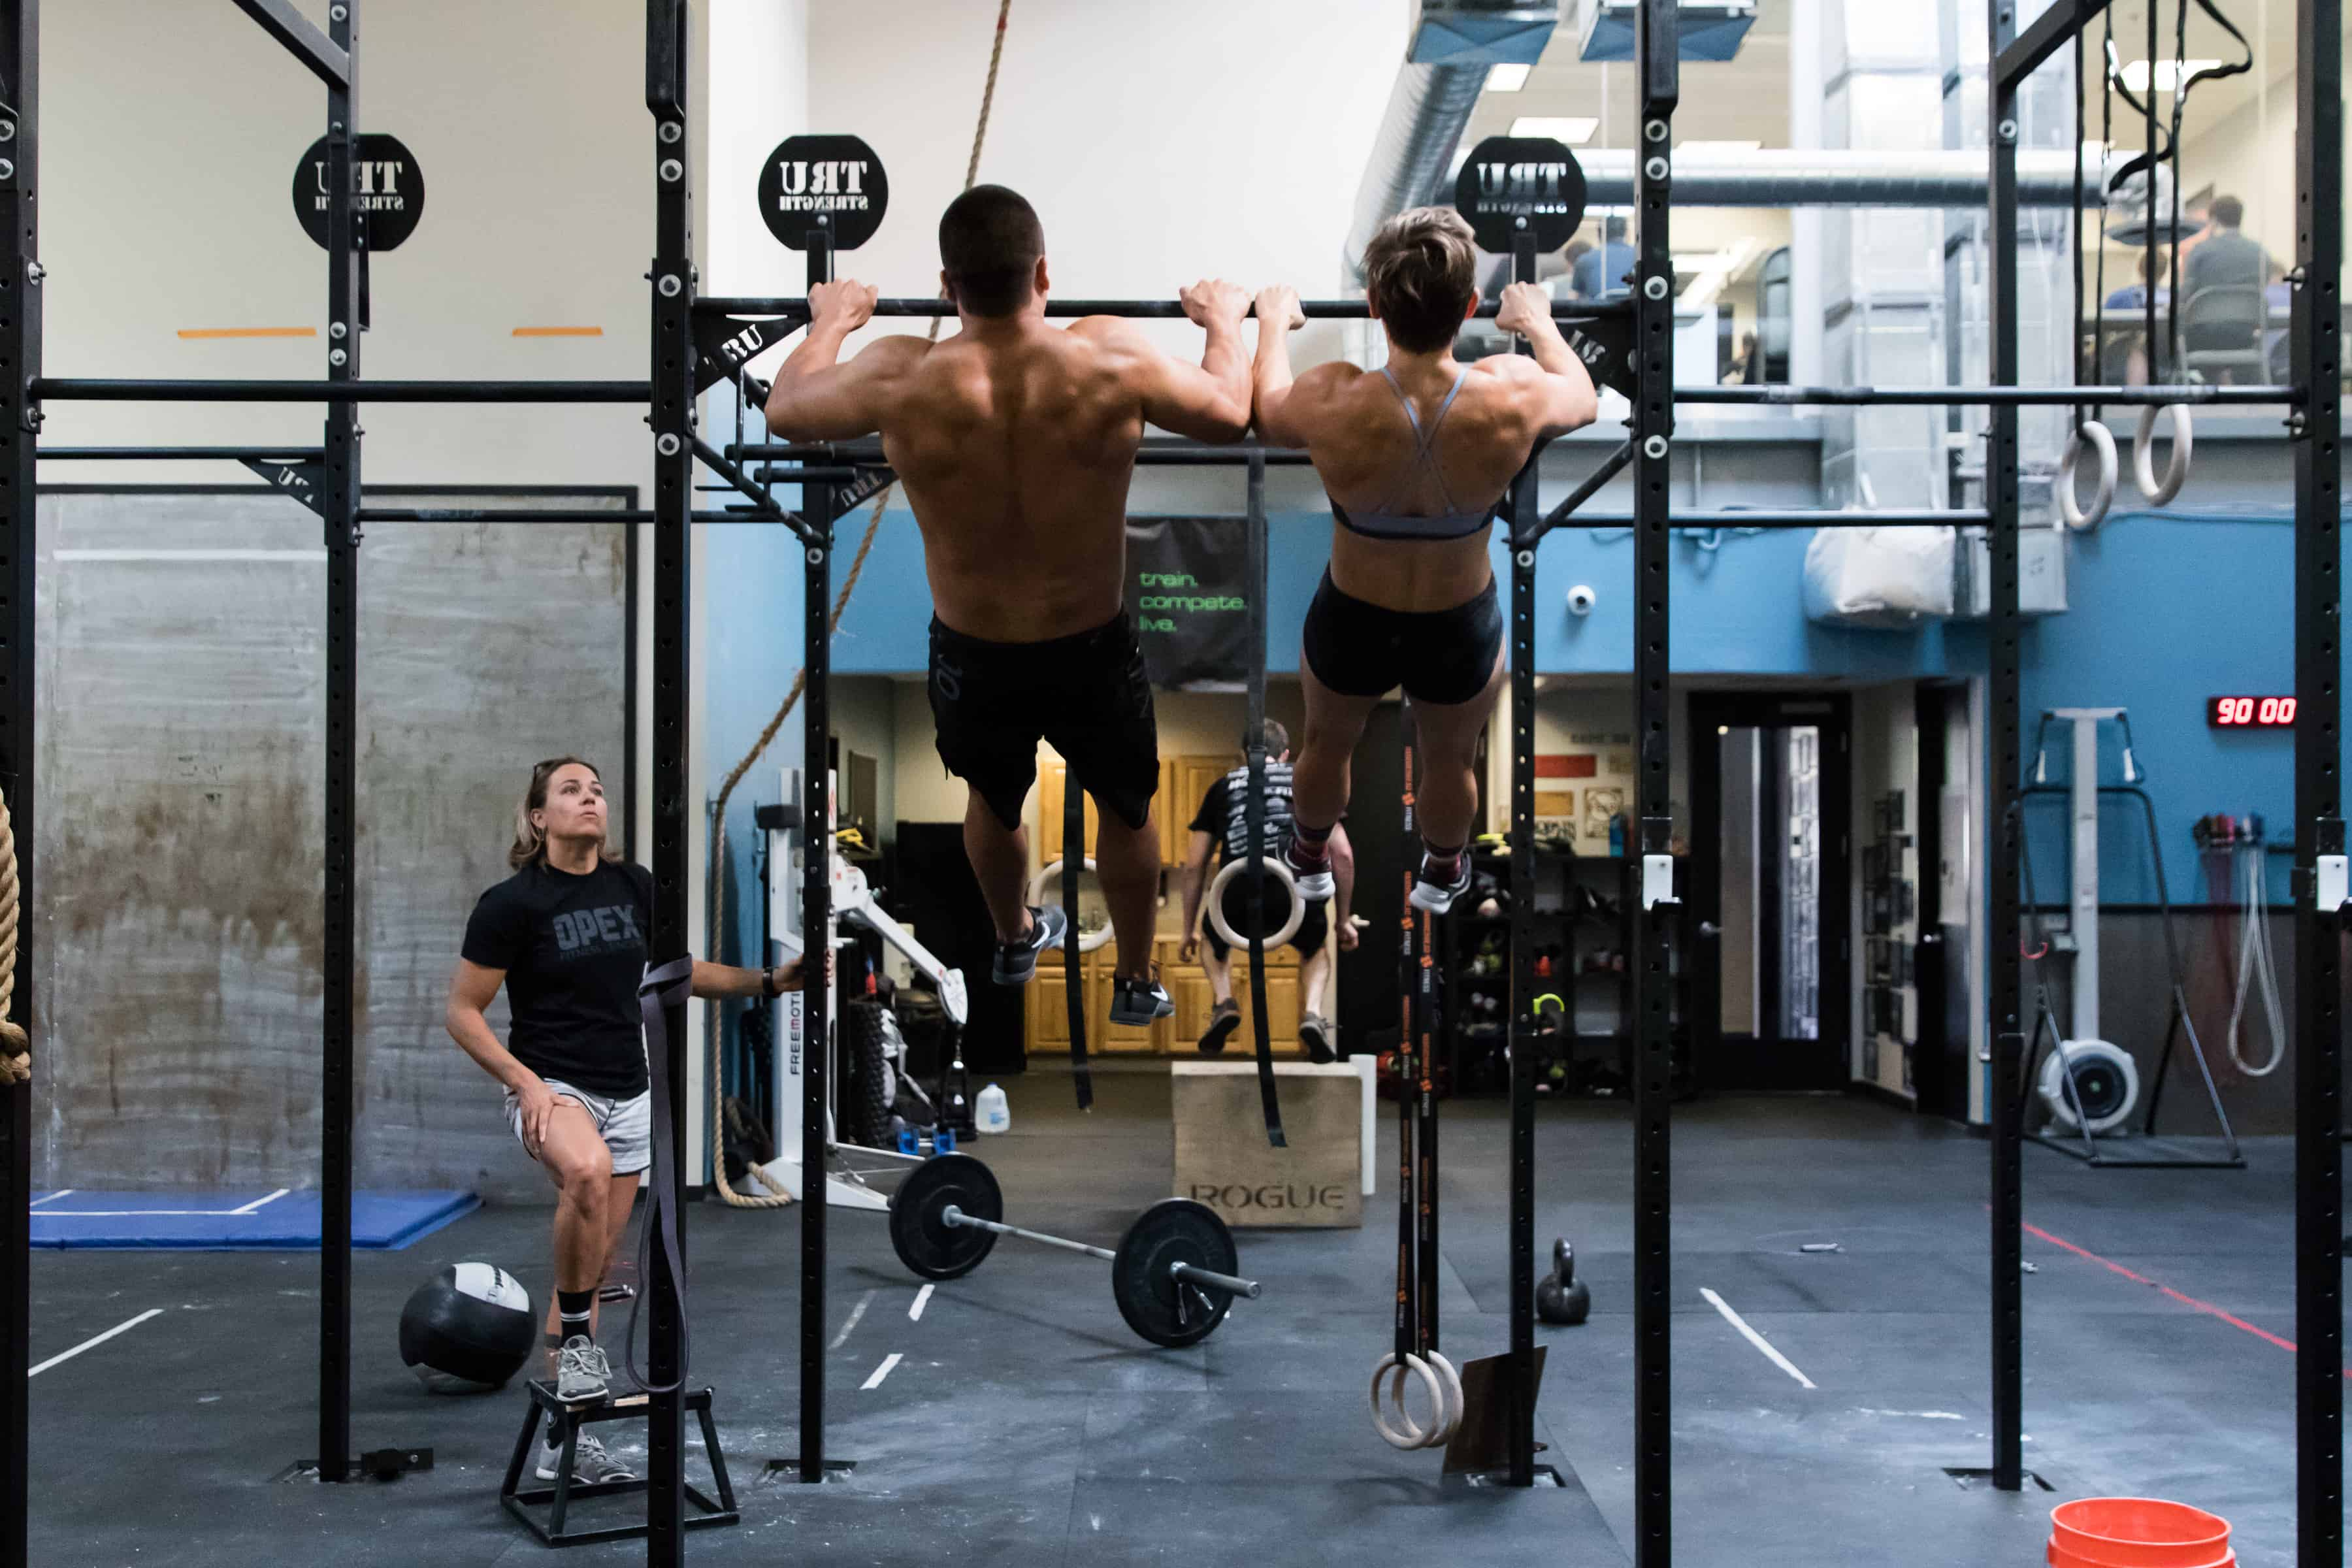 Hanging Bicep Curl or Pull-Up?